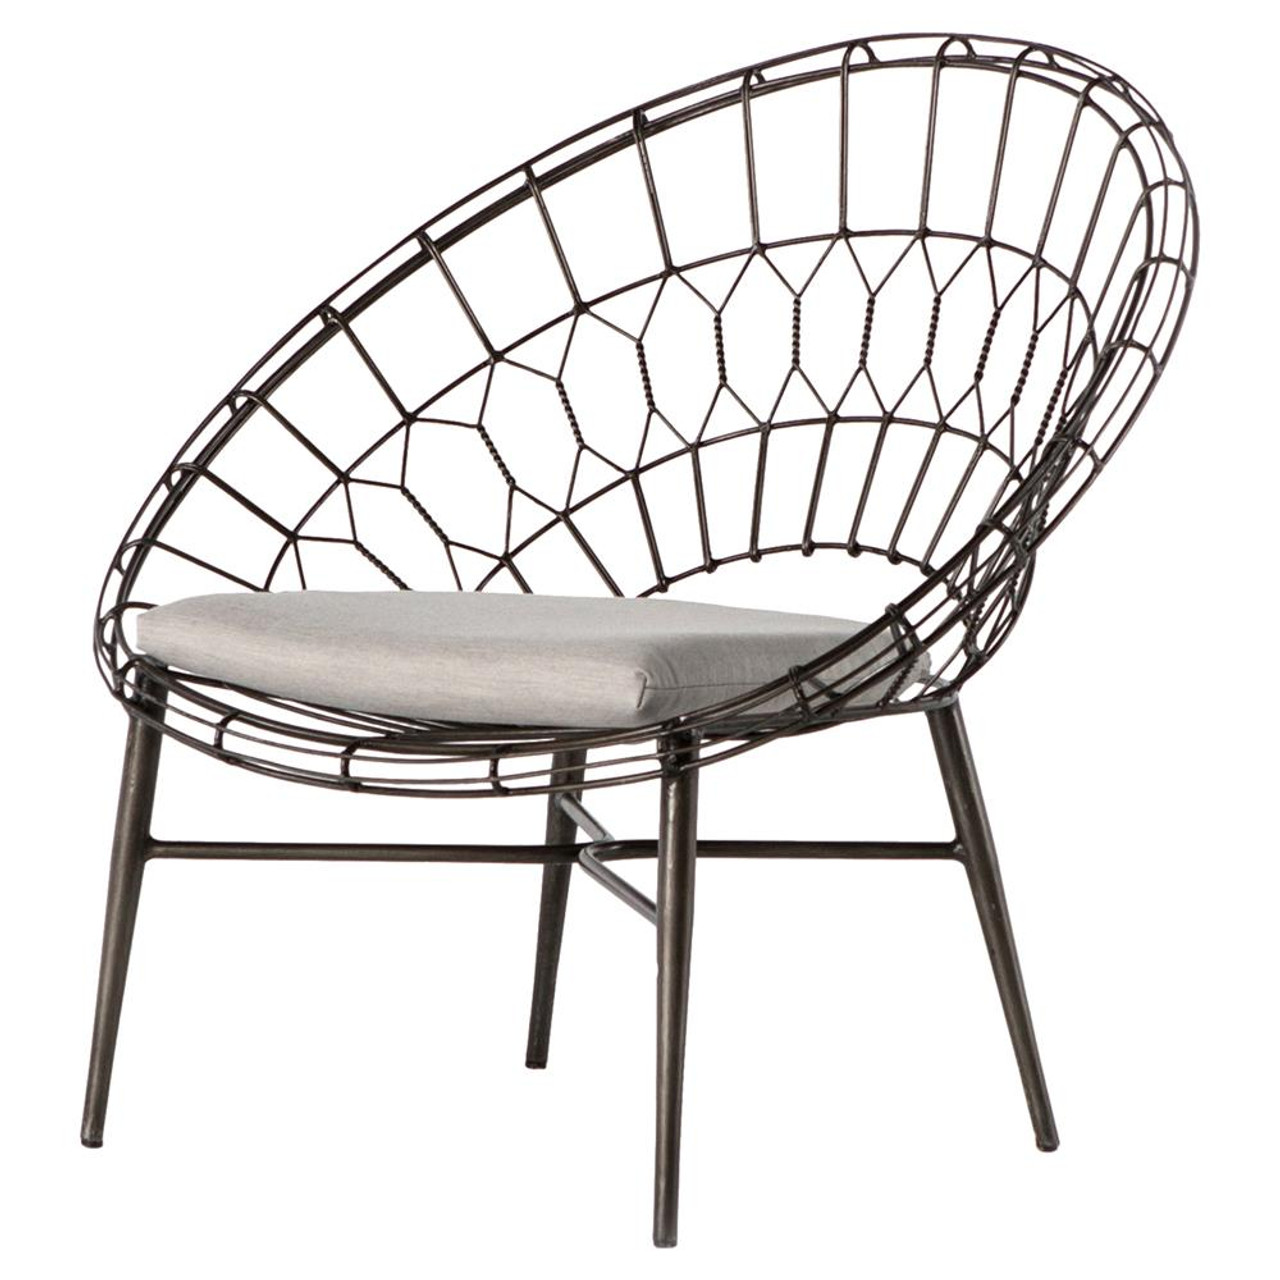 White Outdoor Lounge Chair Marquis Metal Wicker Sunburst Outdoor Lounge Chair